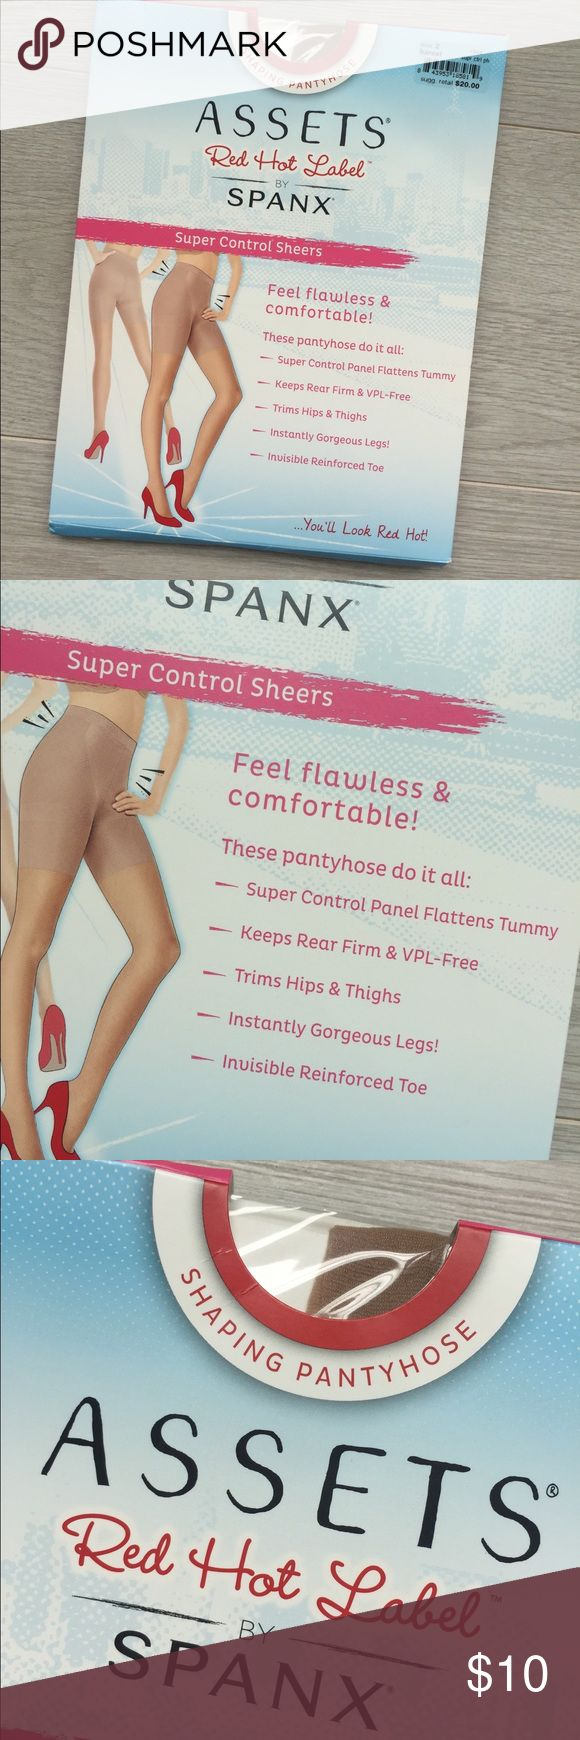 Assets by Spanx Nude hose/tights New in box. Size 2. See photo of sizing! SPANX Accessories Hosiery & Socks